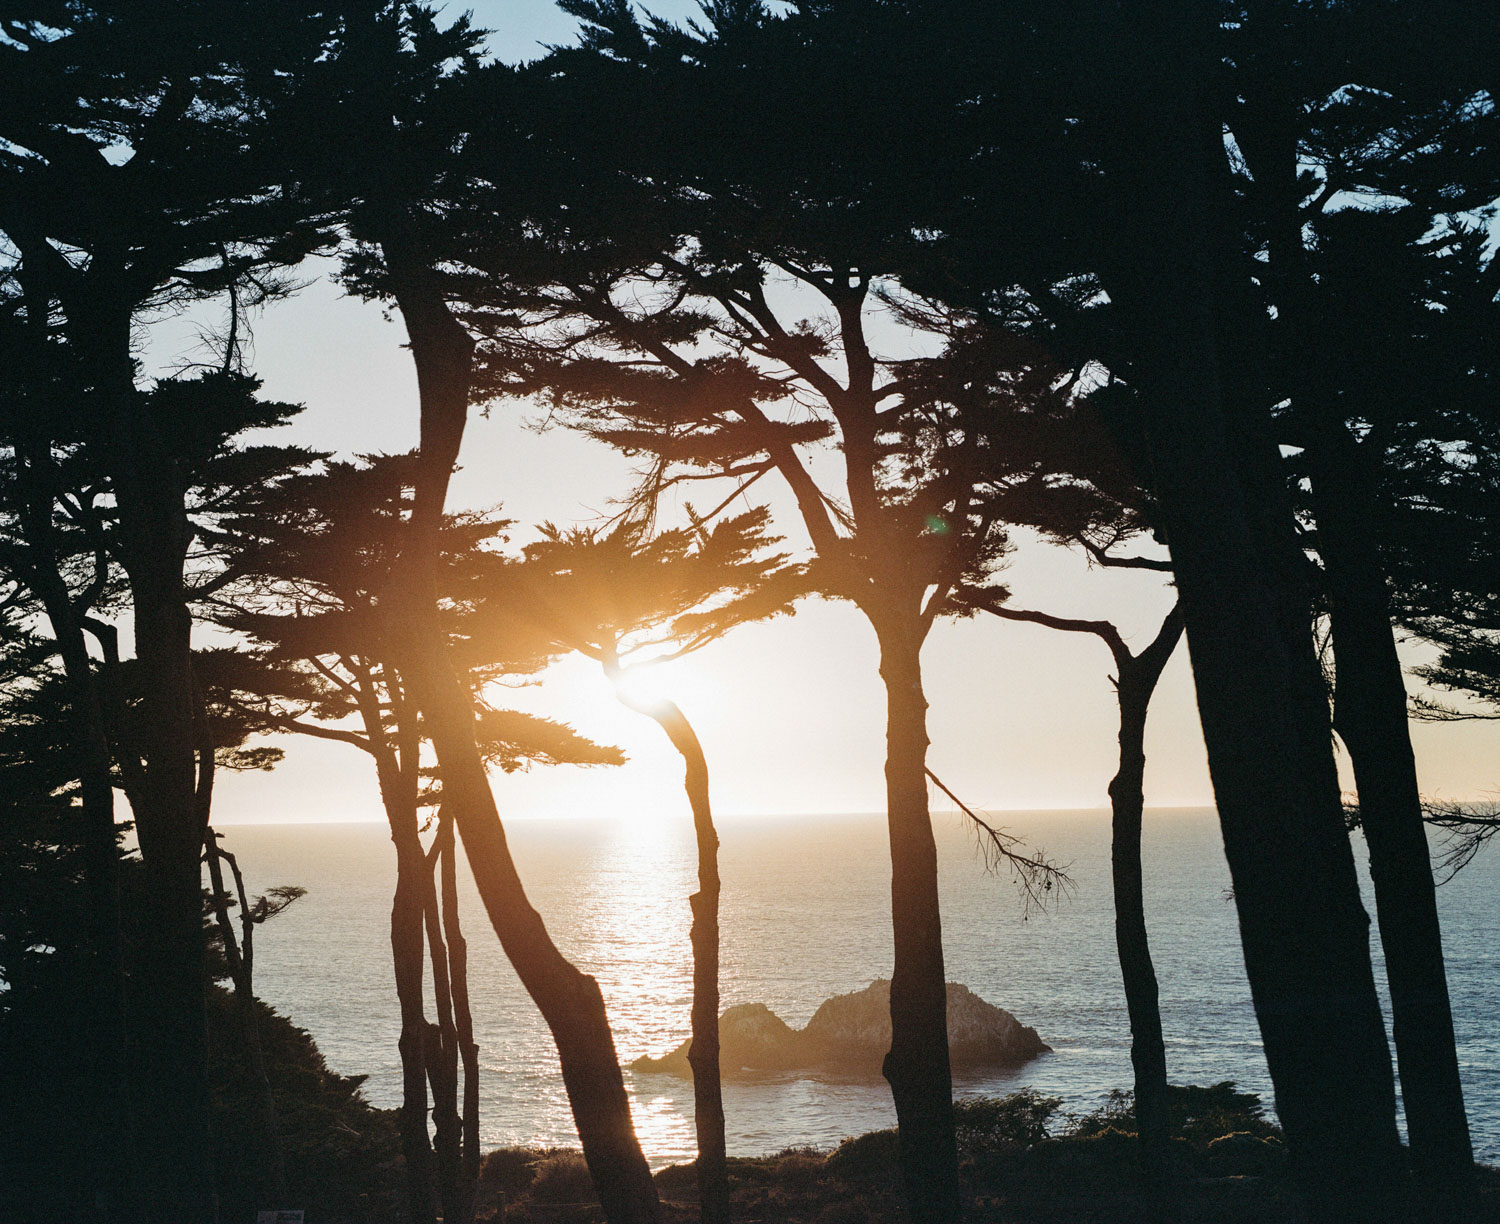 san fransisco beach sunset through trees